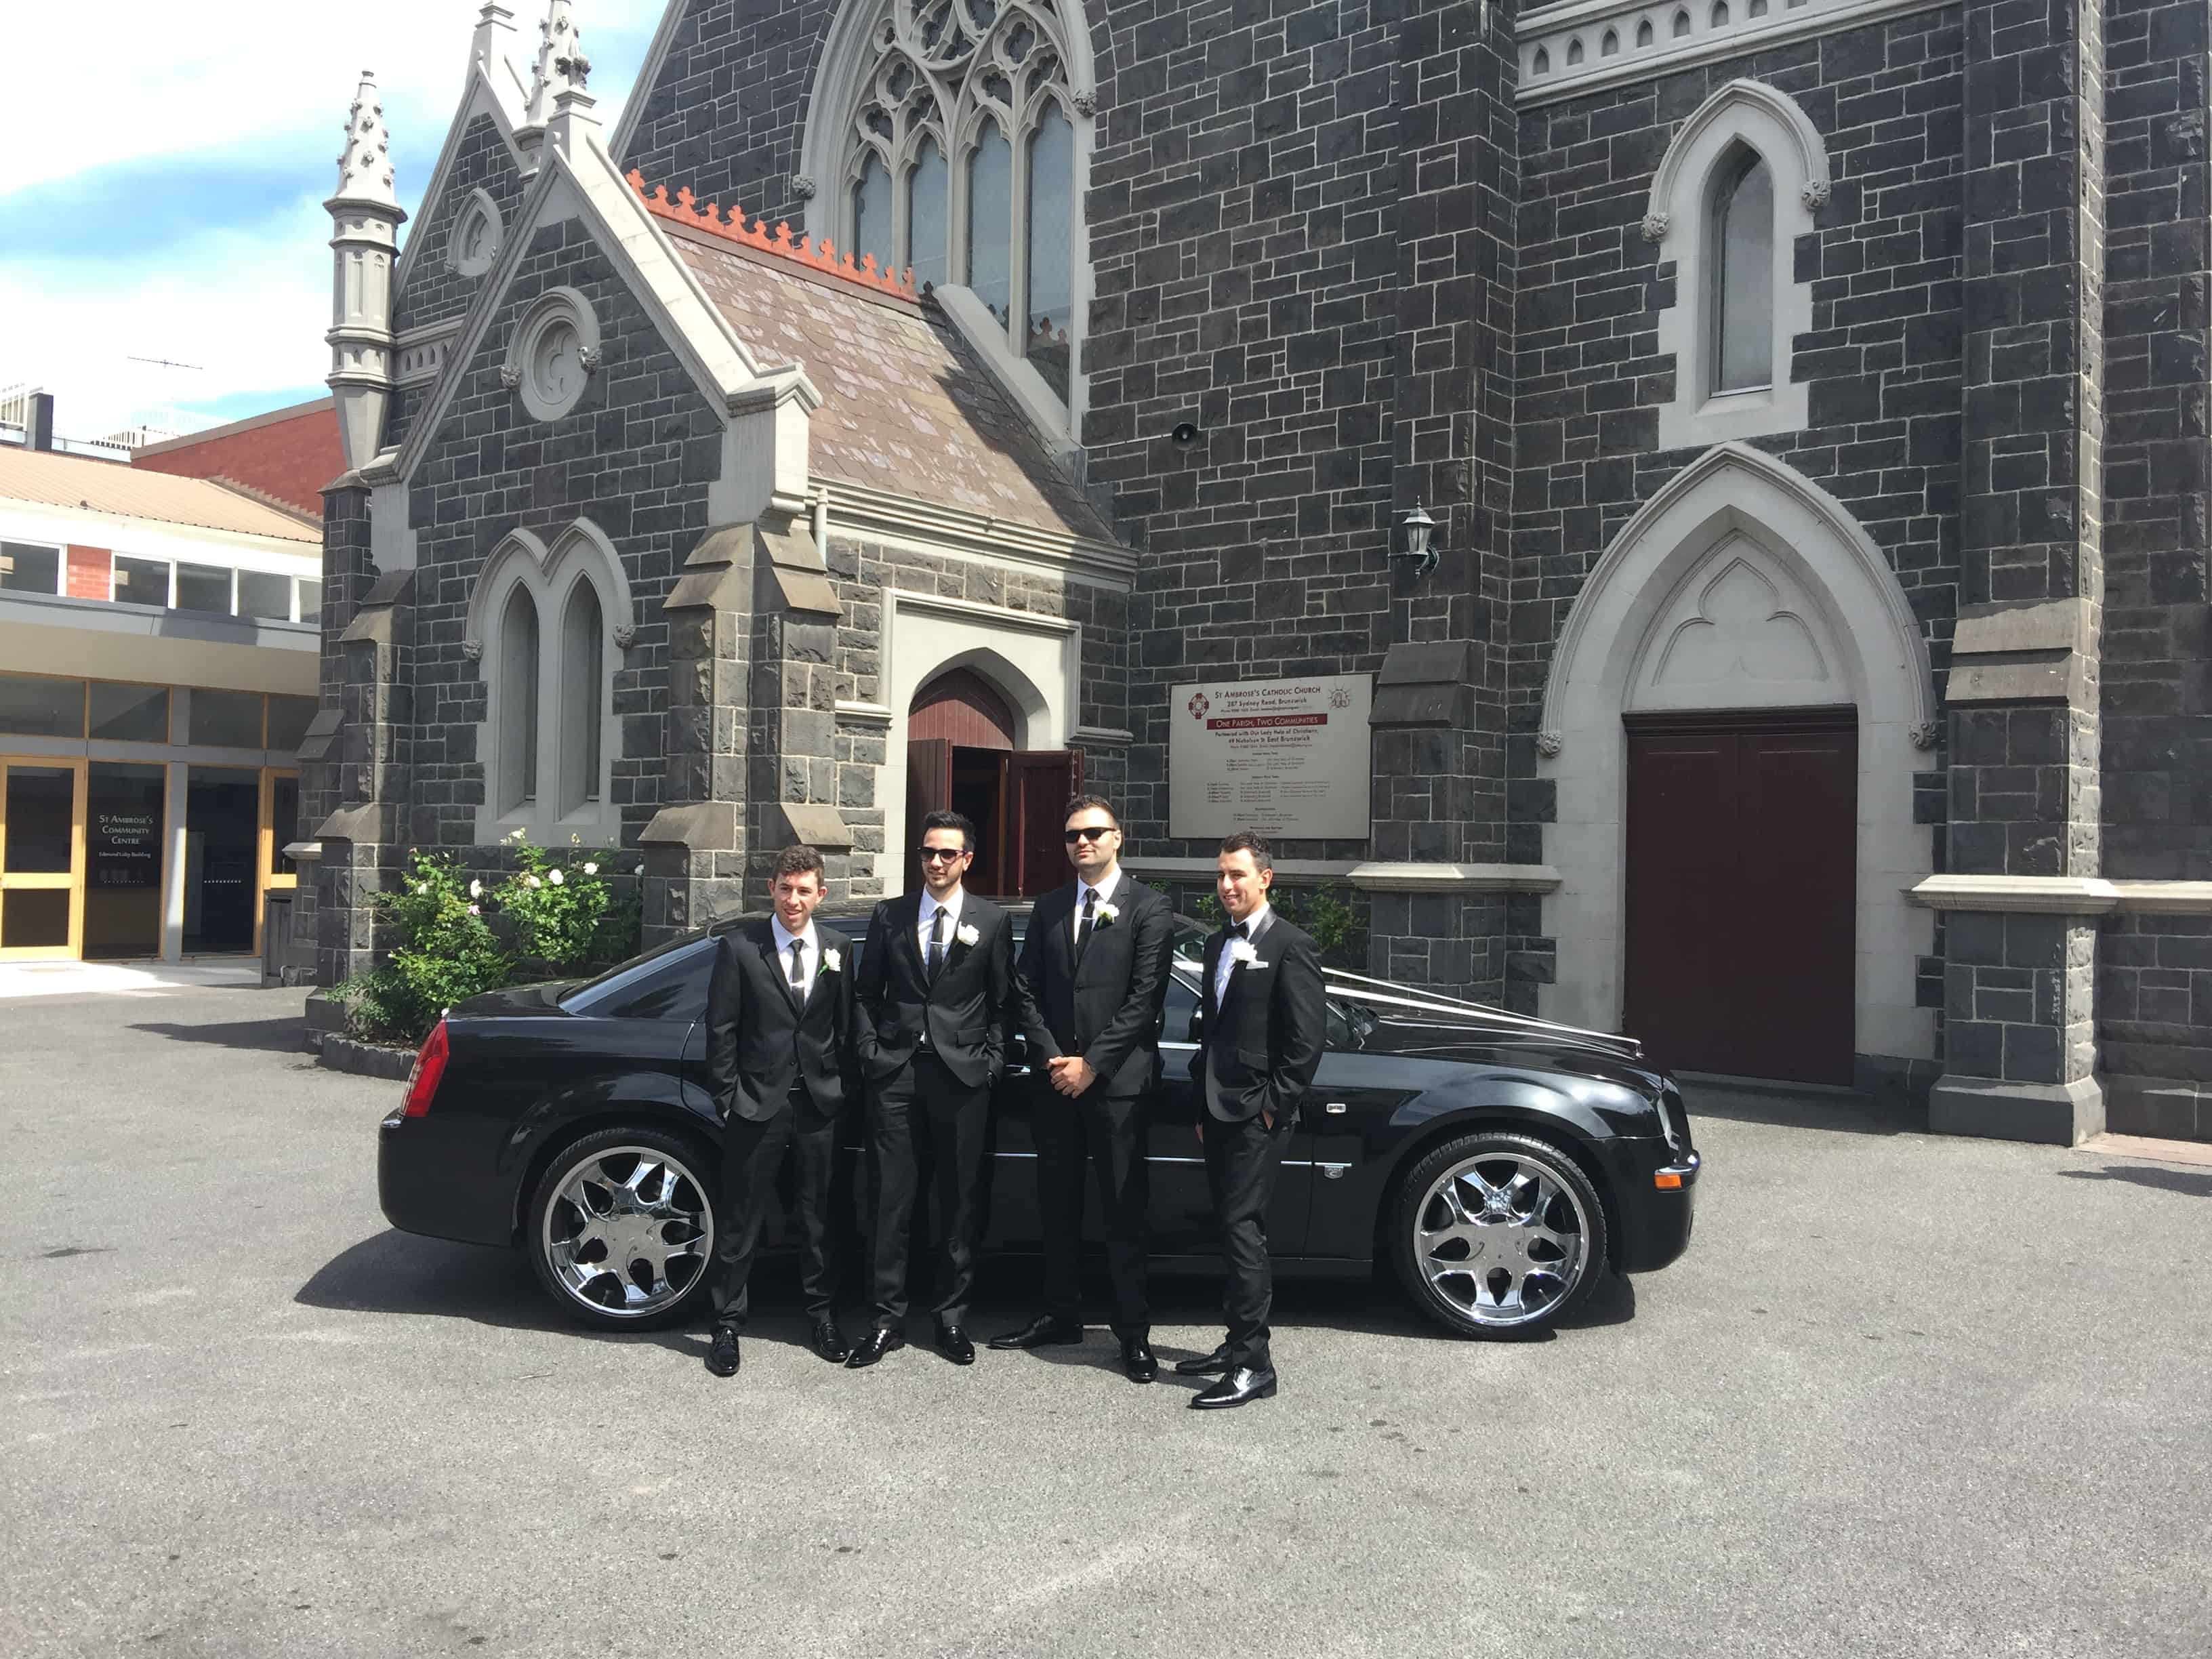 Grooms Party wedding car hire